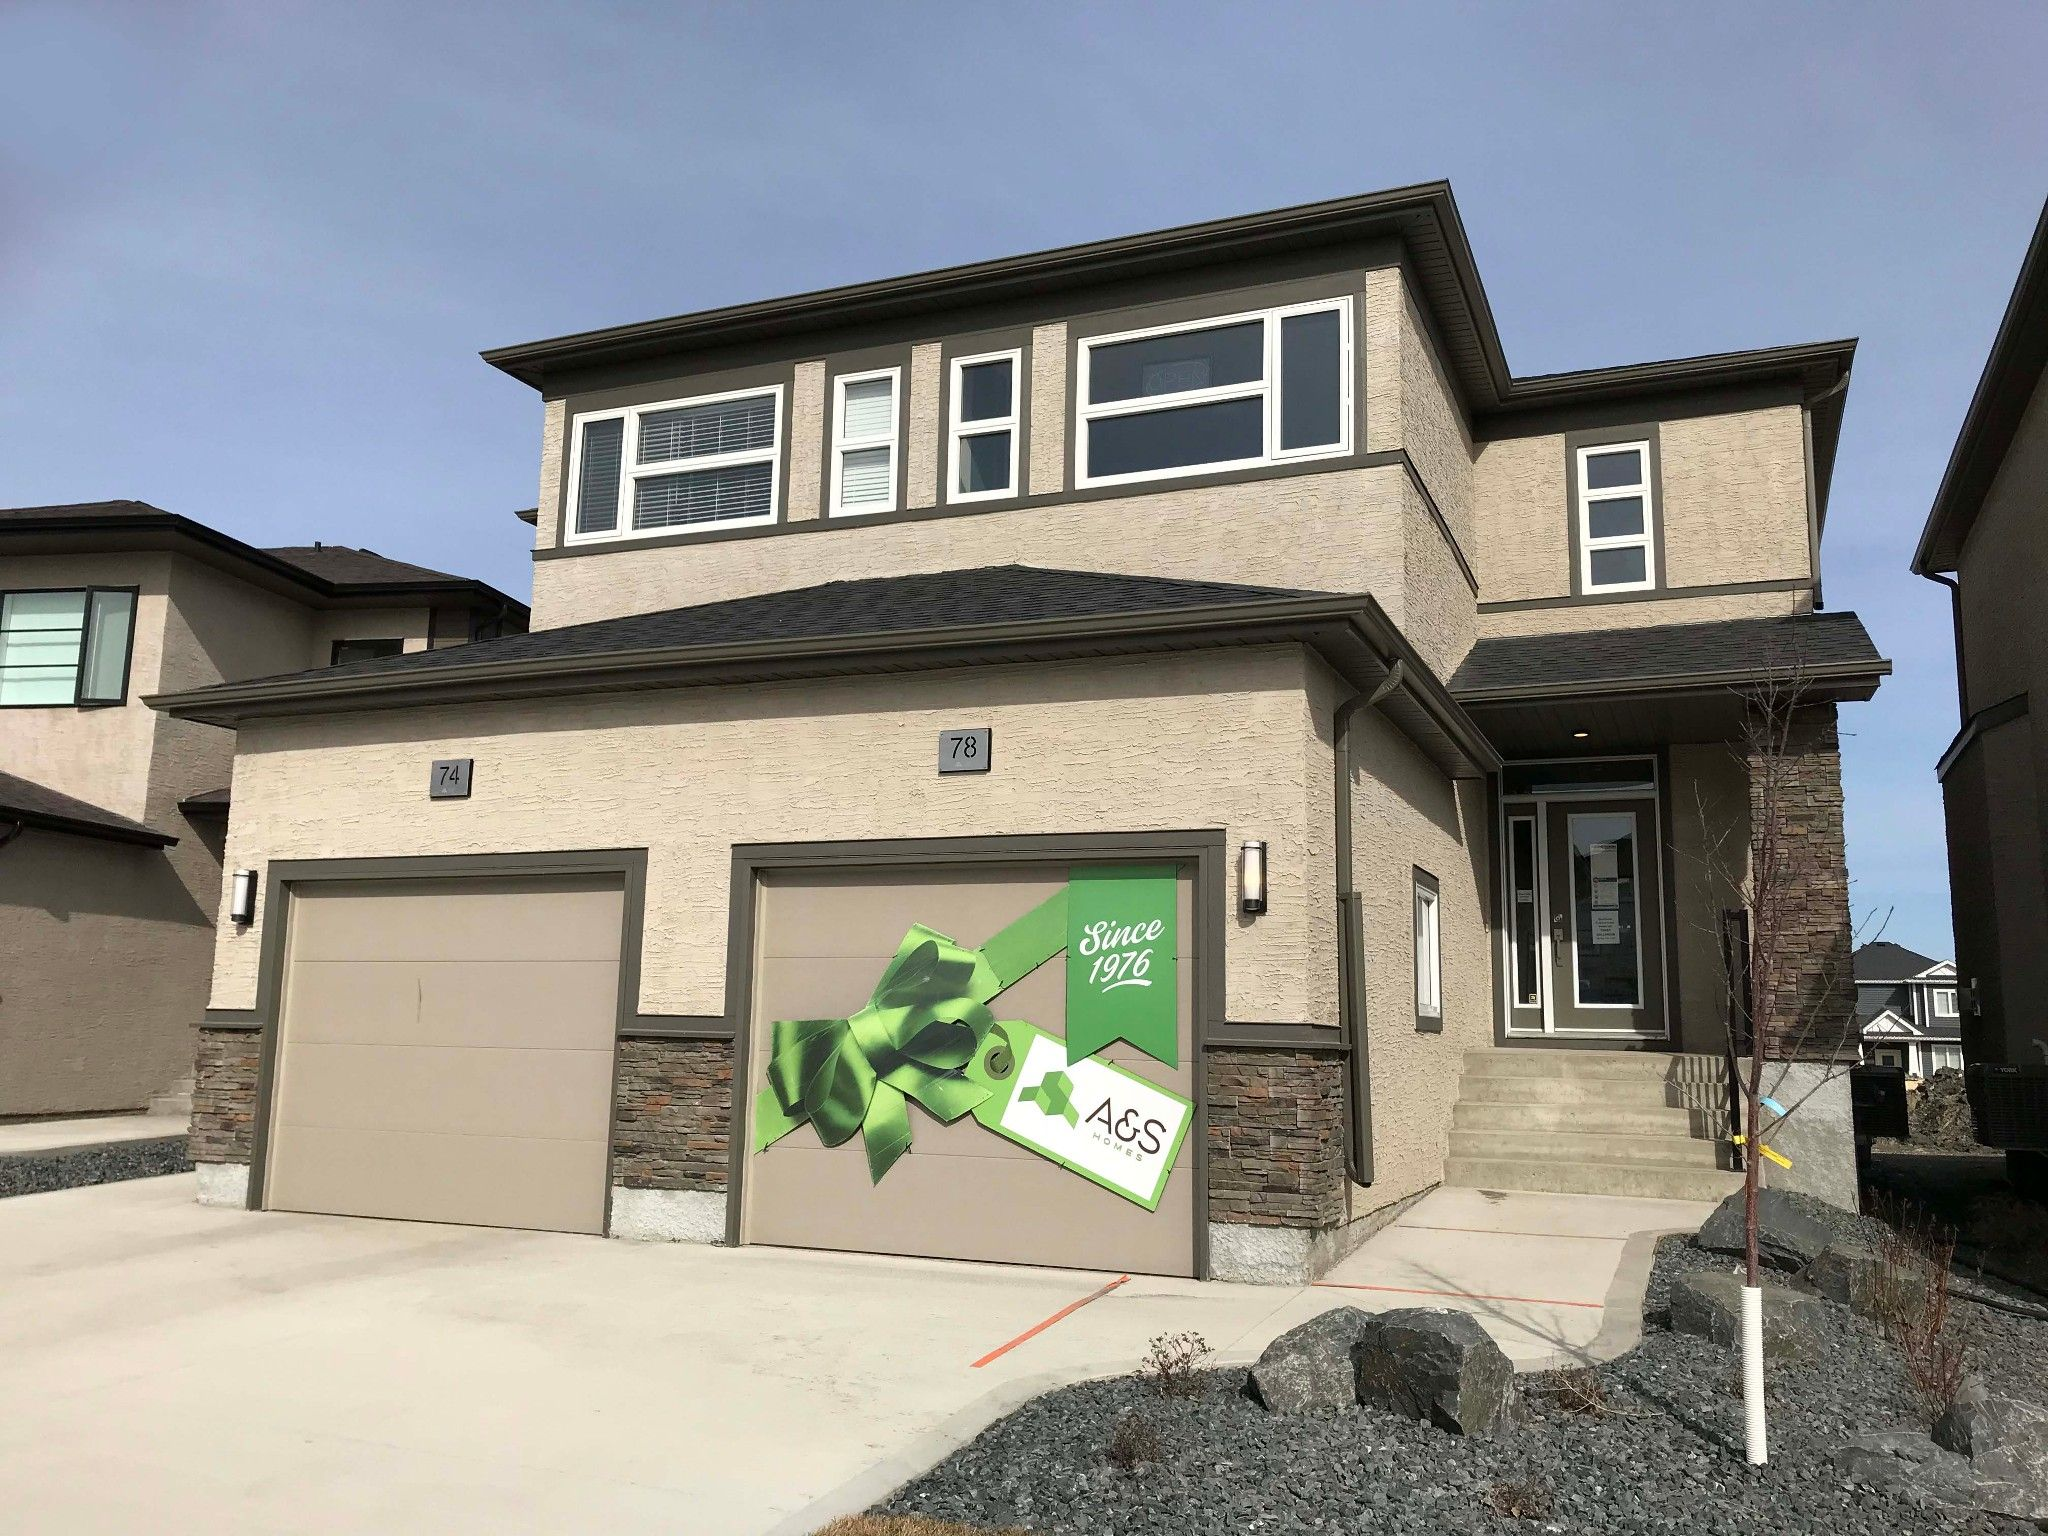 Main Photo: 72 Harvest Lane in St Adolphe: Tourond Creek Residential for sale (R07)  : MLS®# 202112905